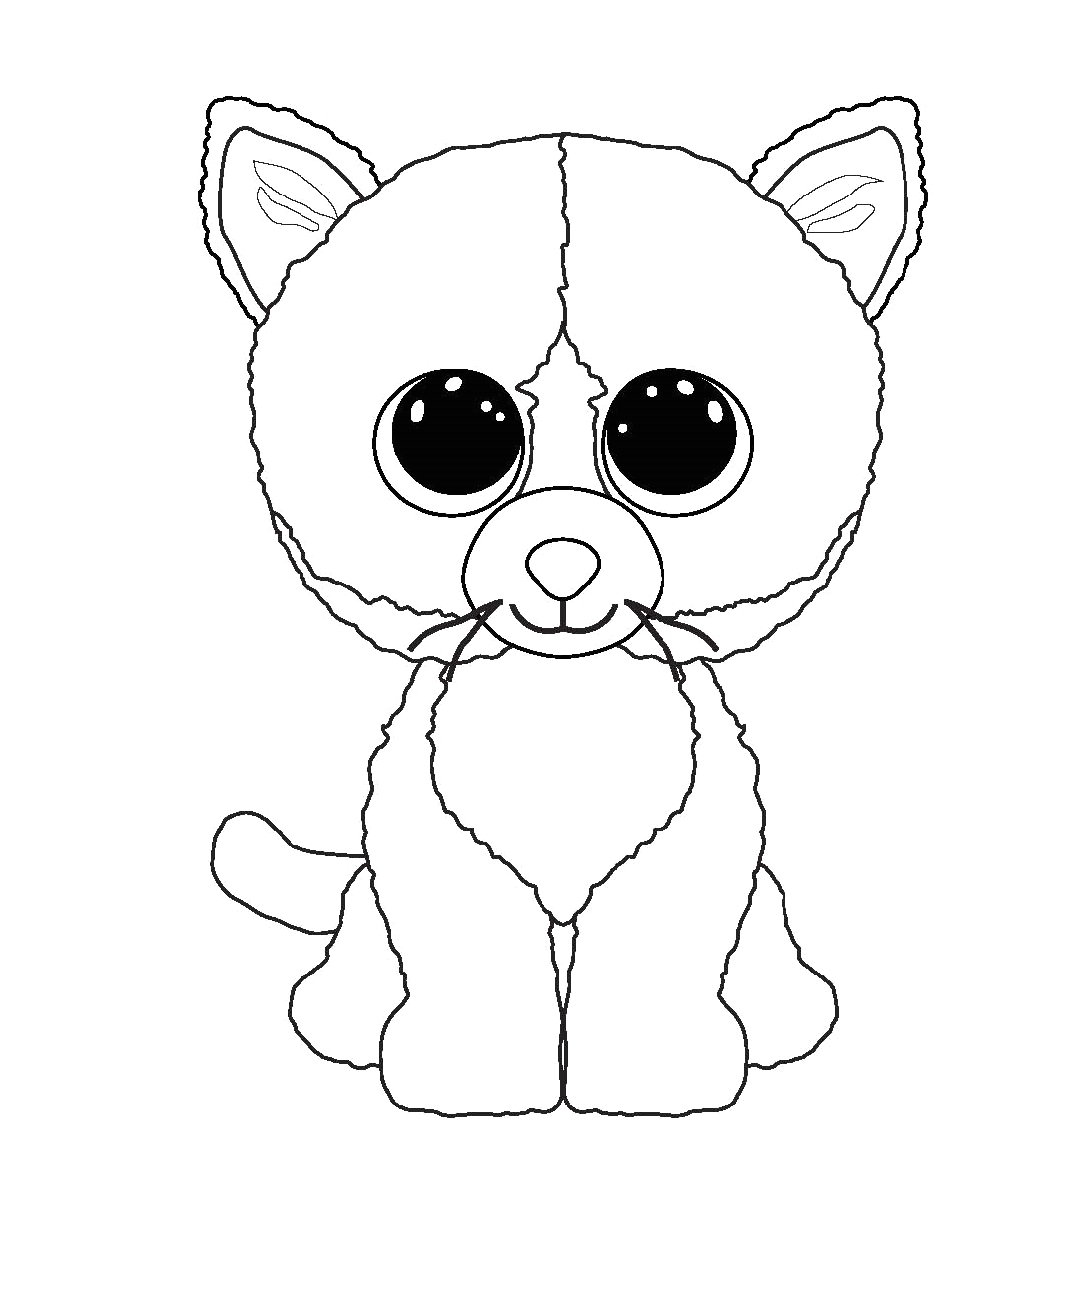 Beanie Boo Coloring Pages that You Can Print Beanie Boo Coloring Pages for Kids